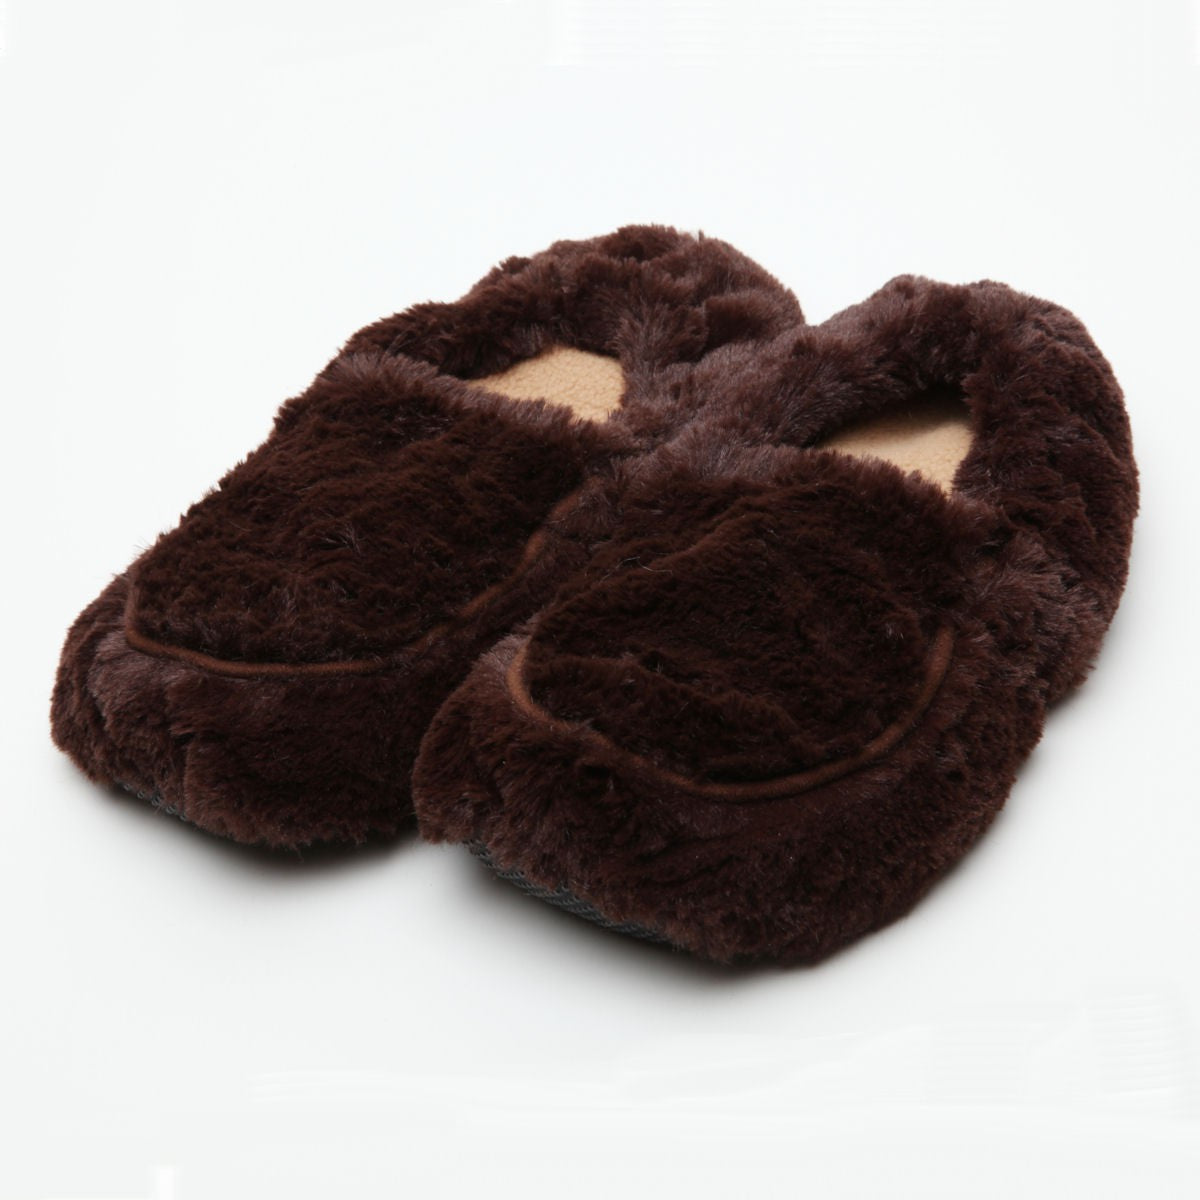 Intelex Furry Warmers Microwavable Slippers - Brown